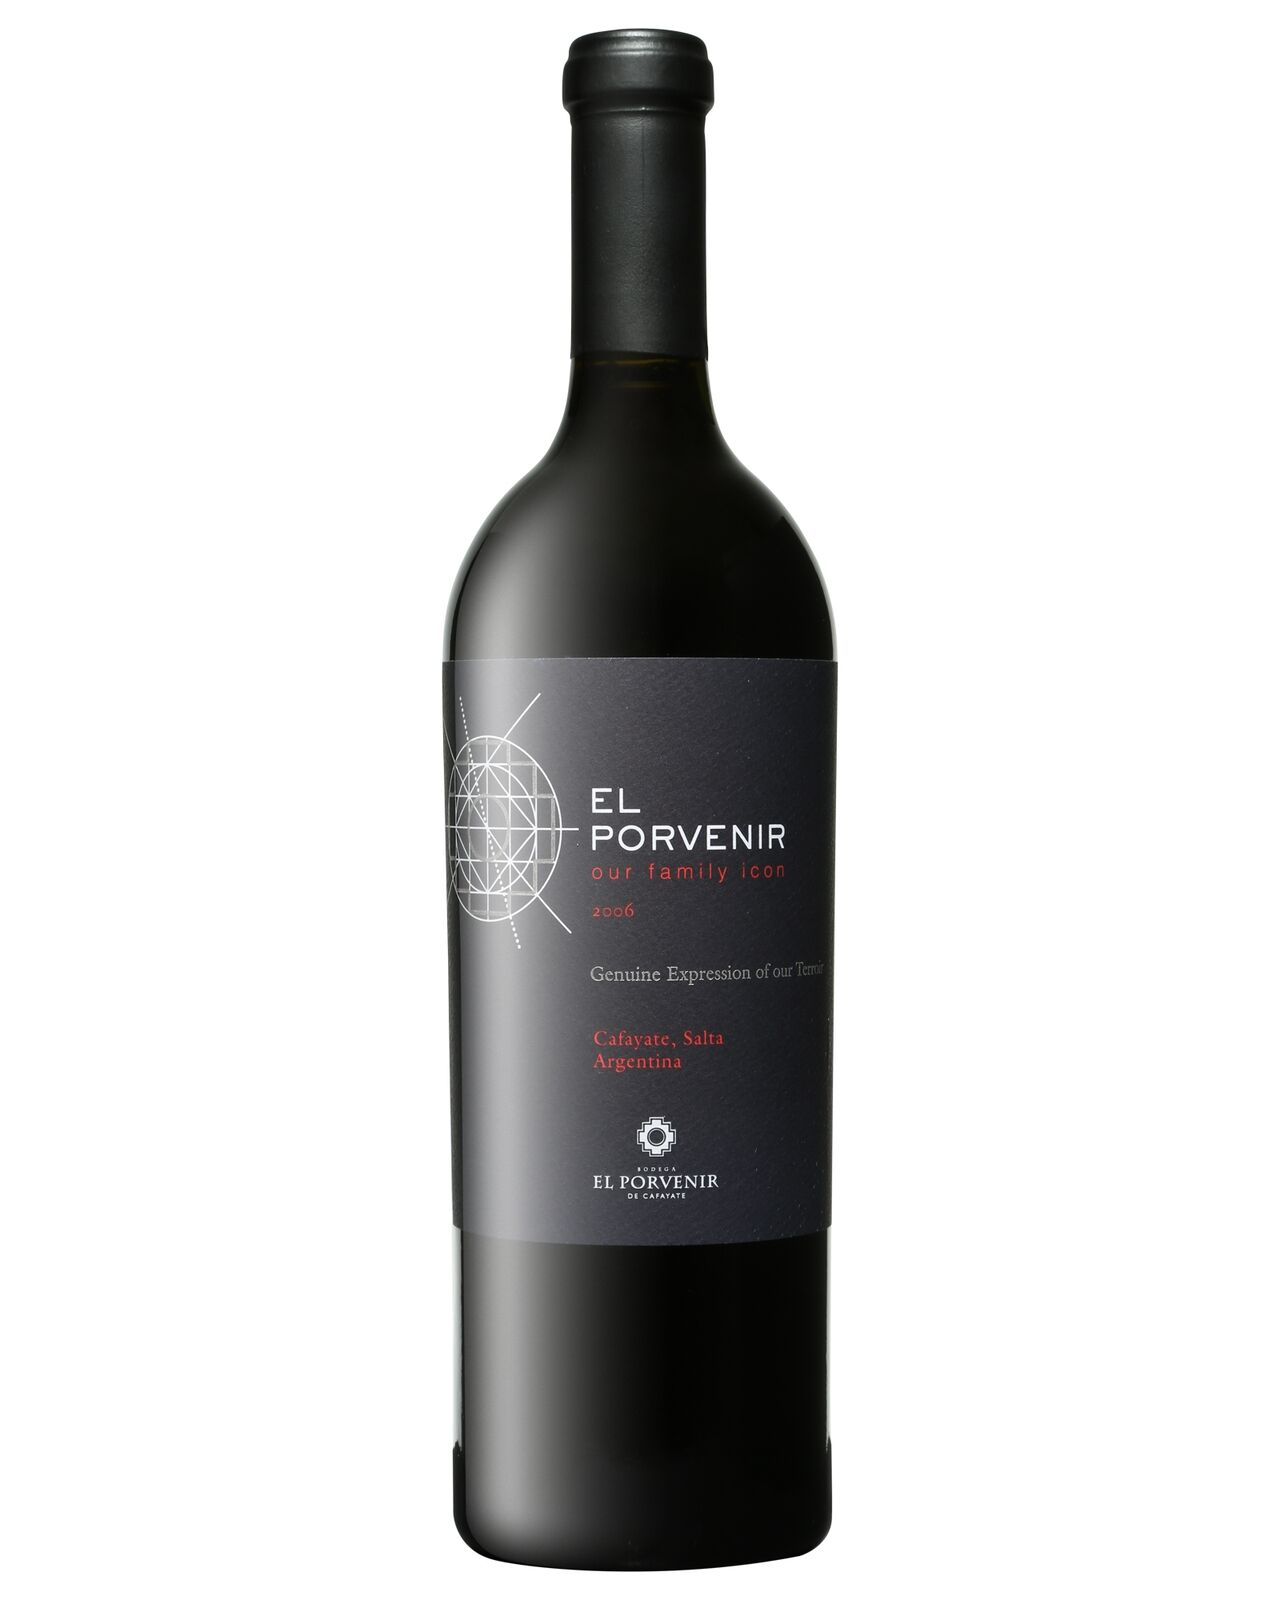 El Porvenir Our Family Icon 2006 bottle Malbec Cabernet Sauvignon Tannat Shiraz